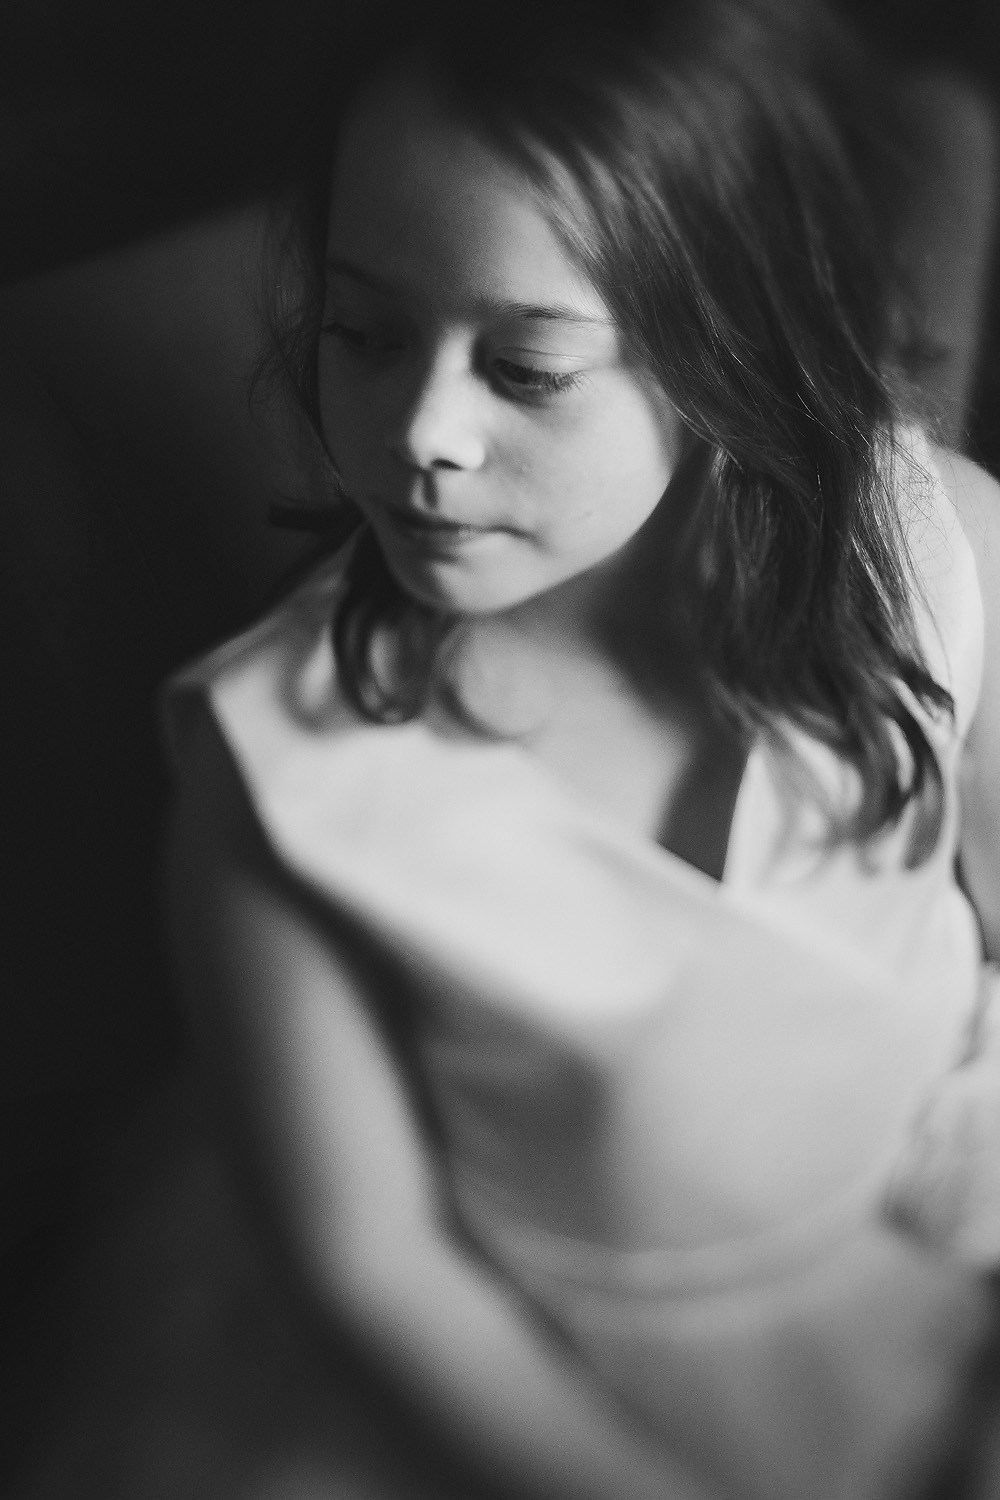 Lensbaby Edge 50 Natural light portrait by Willie Kers from the Netherlands